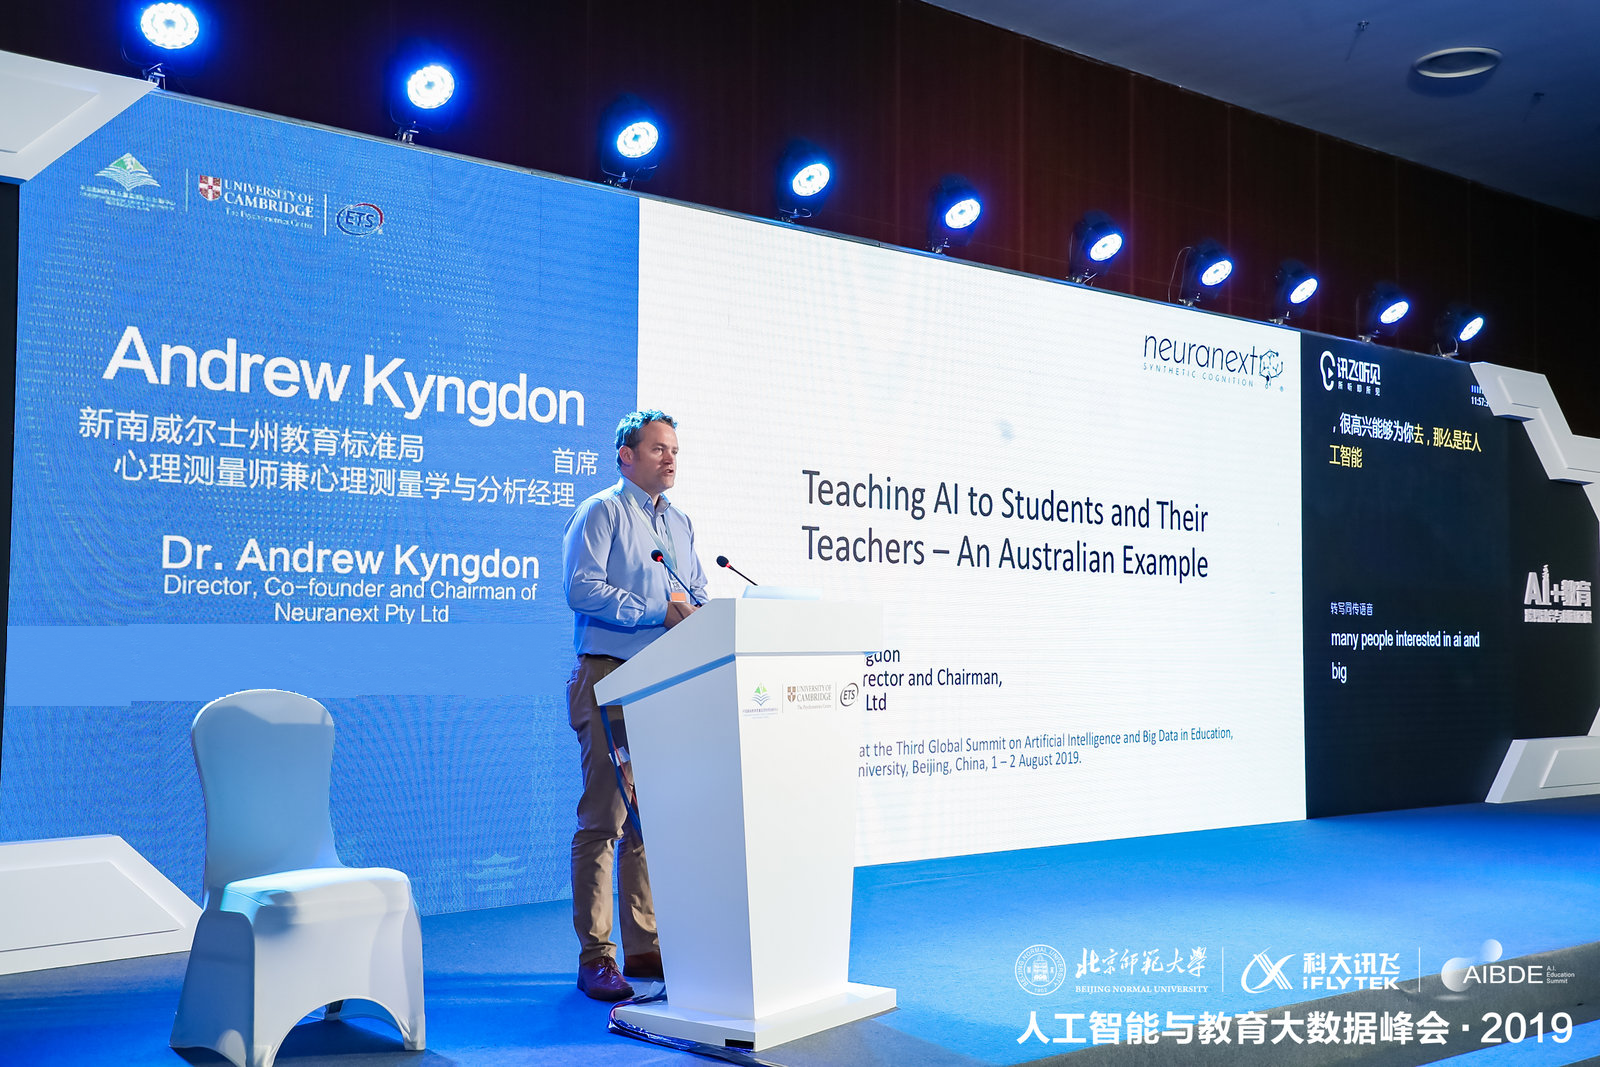 Neuranext presents paper on Teaching A.I. at Global A.I. in Education Summit in Beijing.